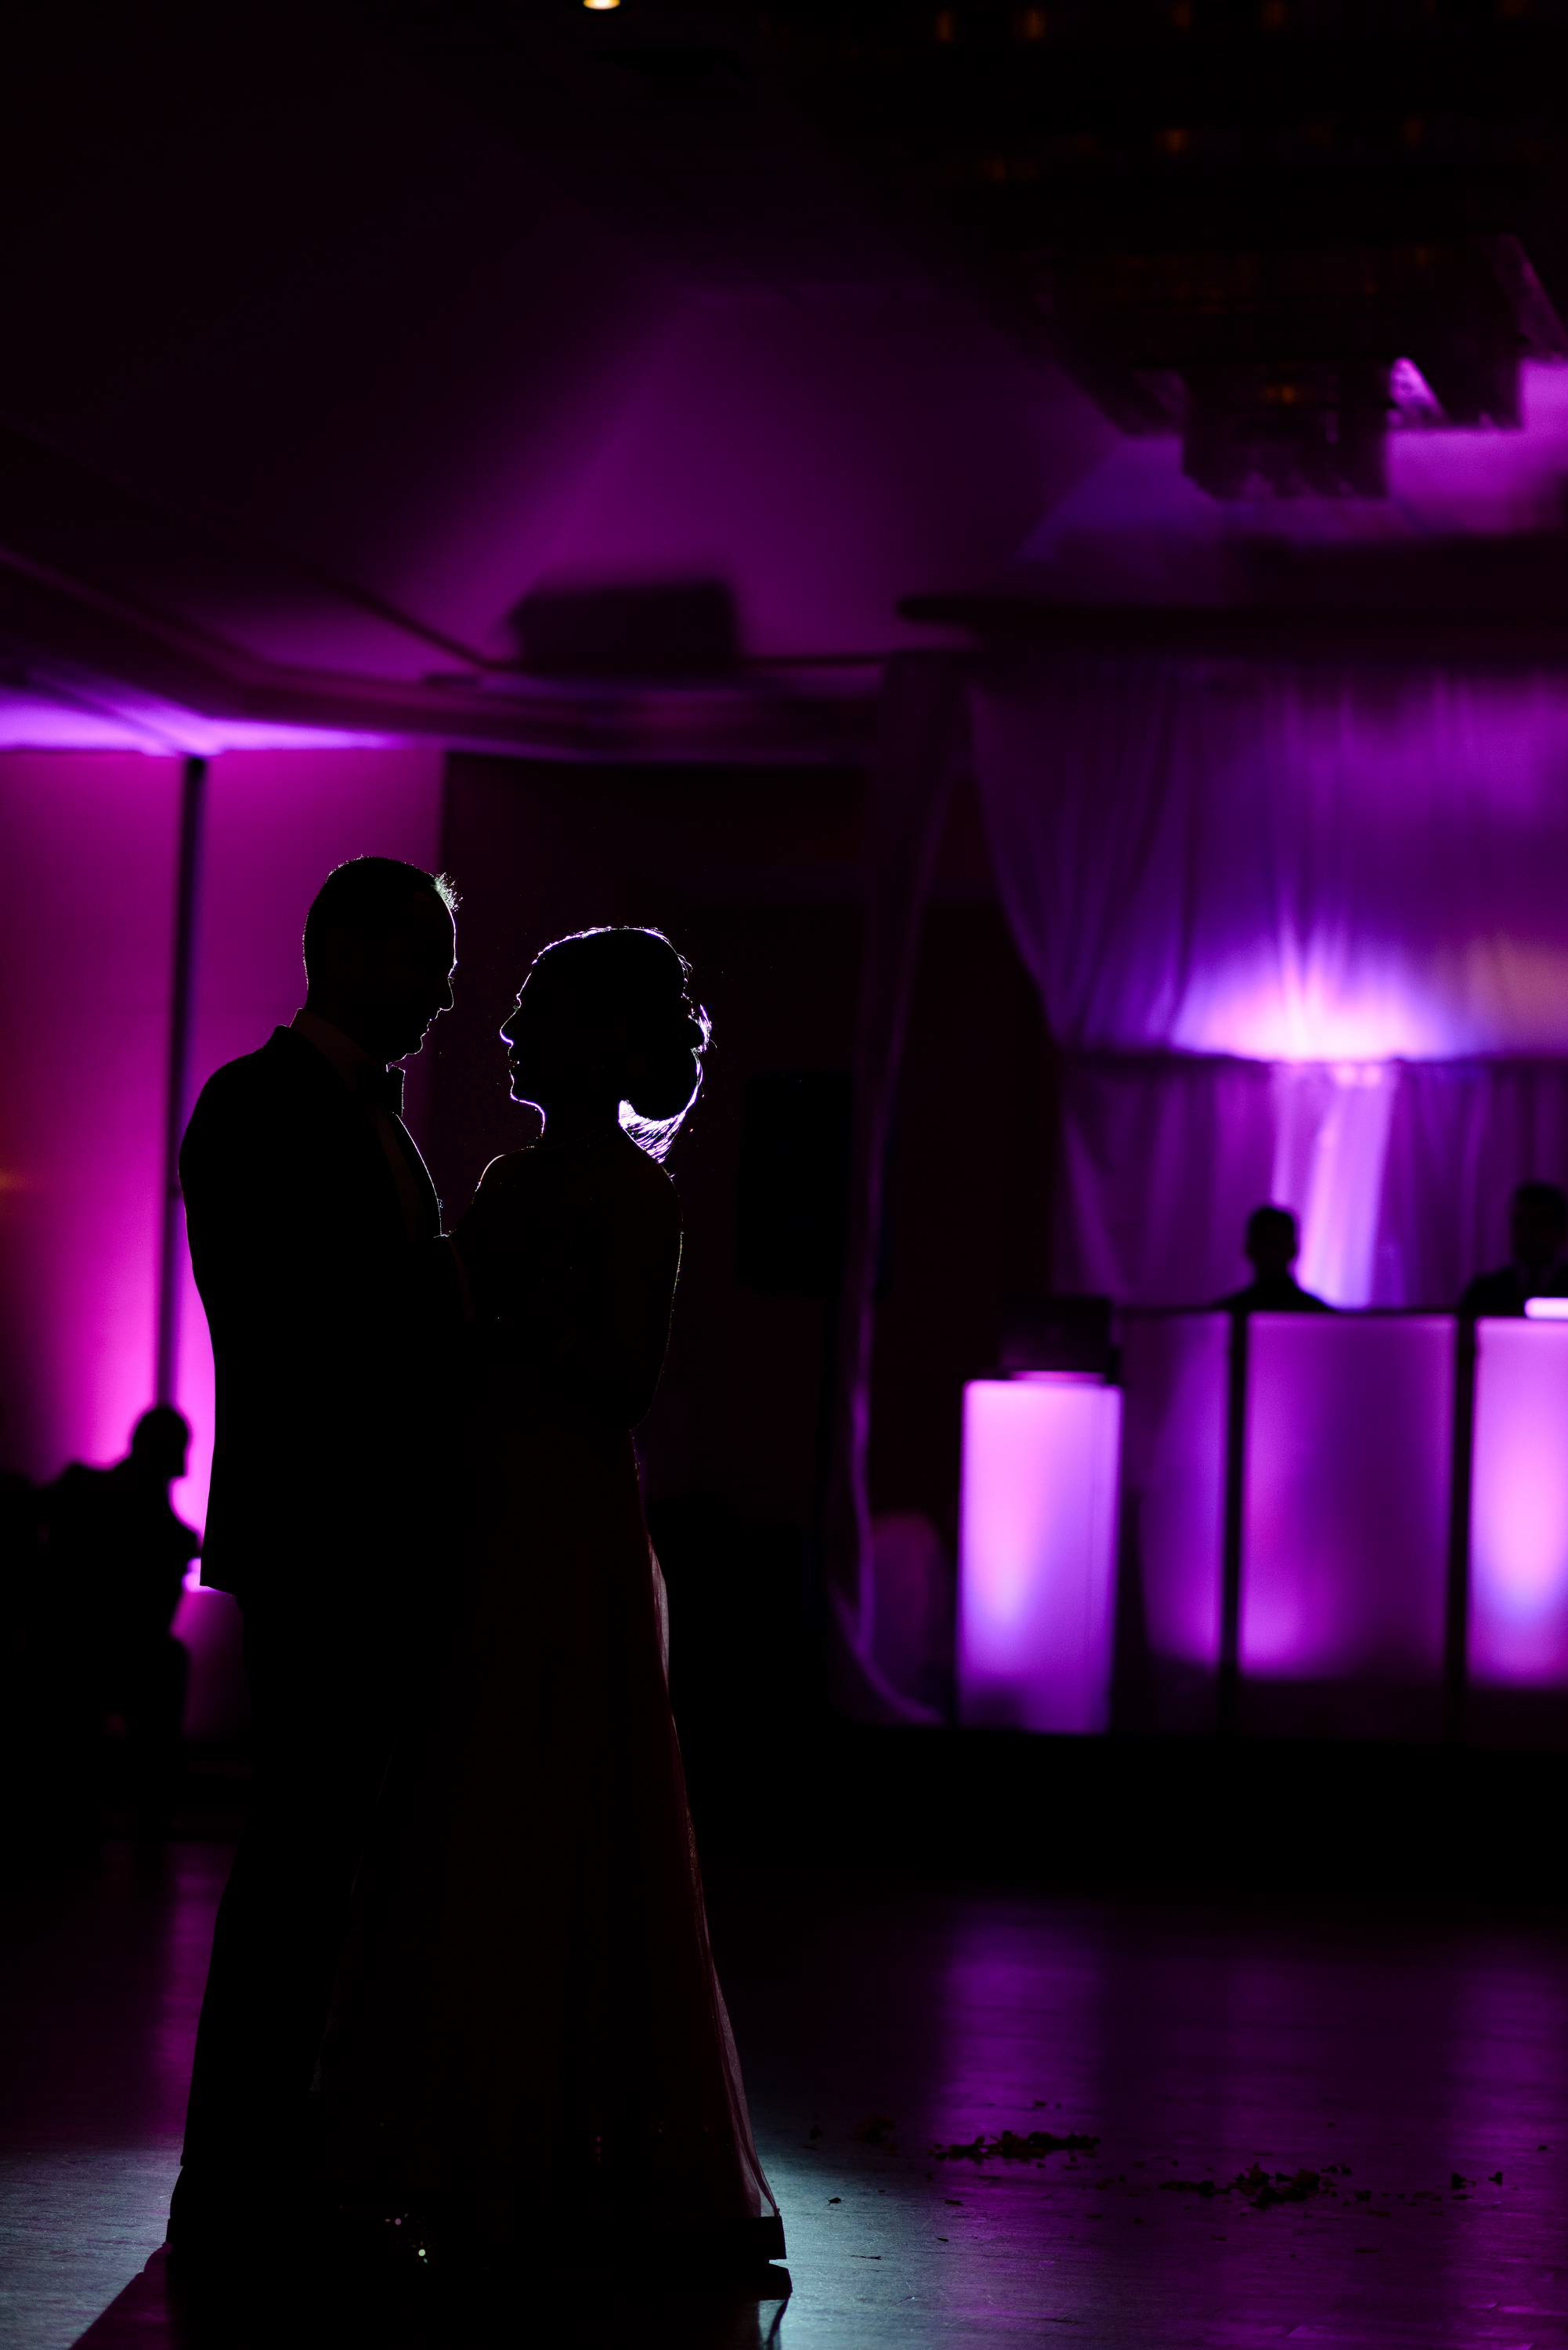 We love incorporating the wedding colors and decor while taking wedding photos. The bride chose purple to be her primary color for the wedding reception